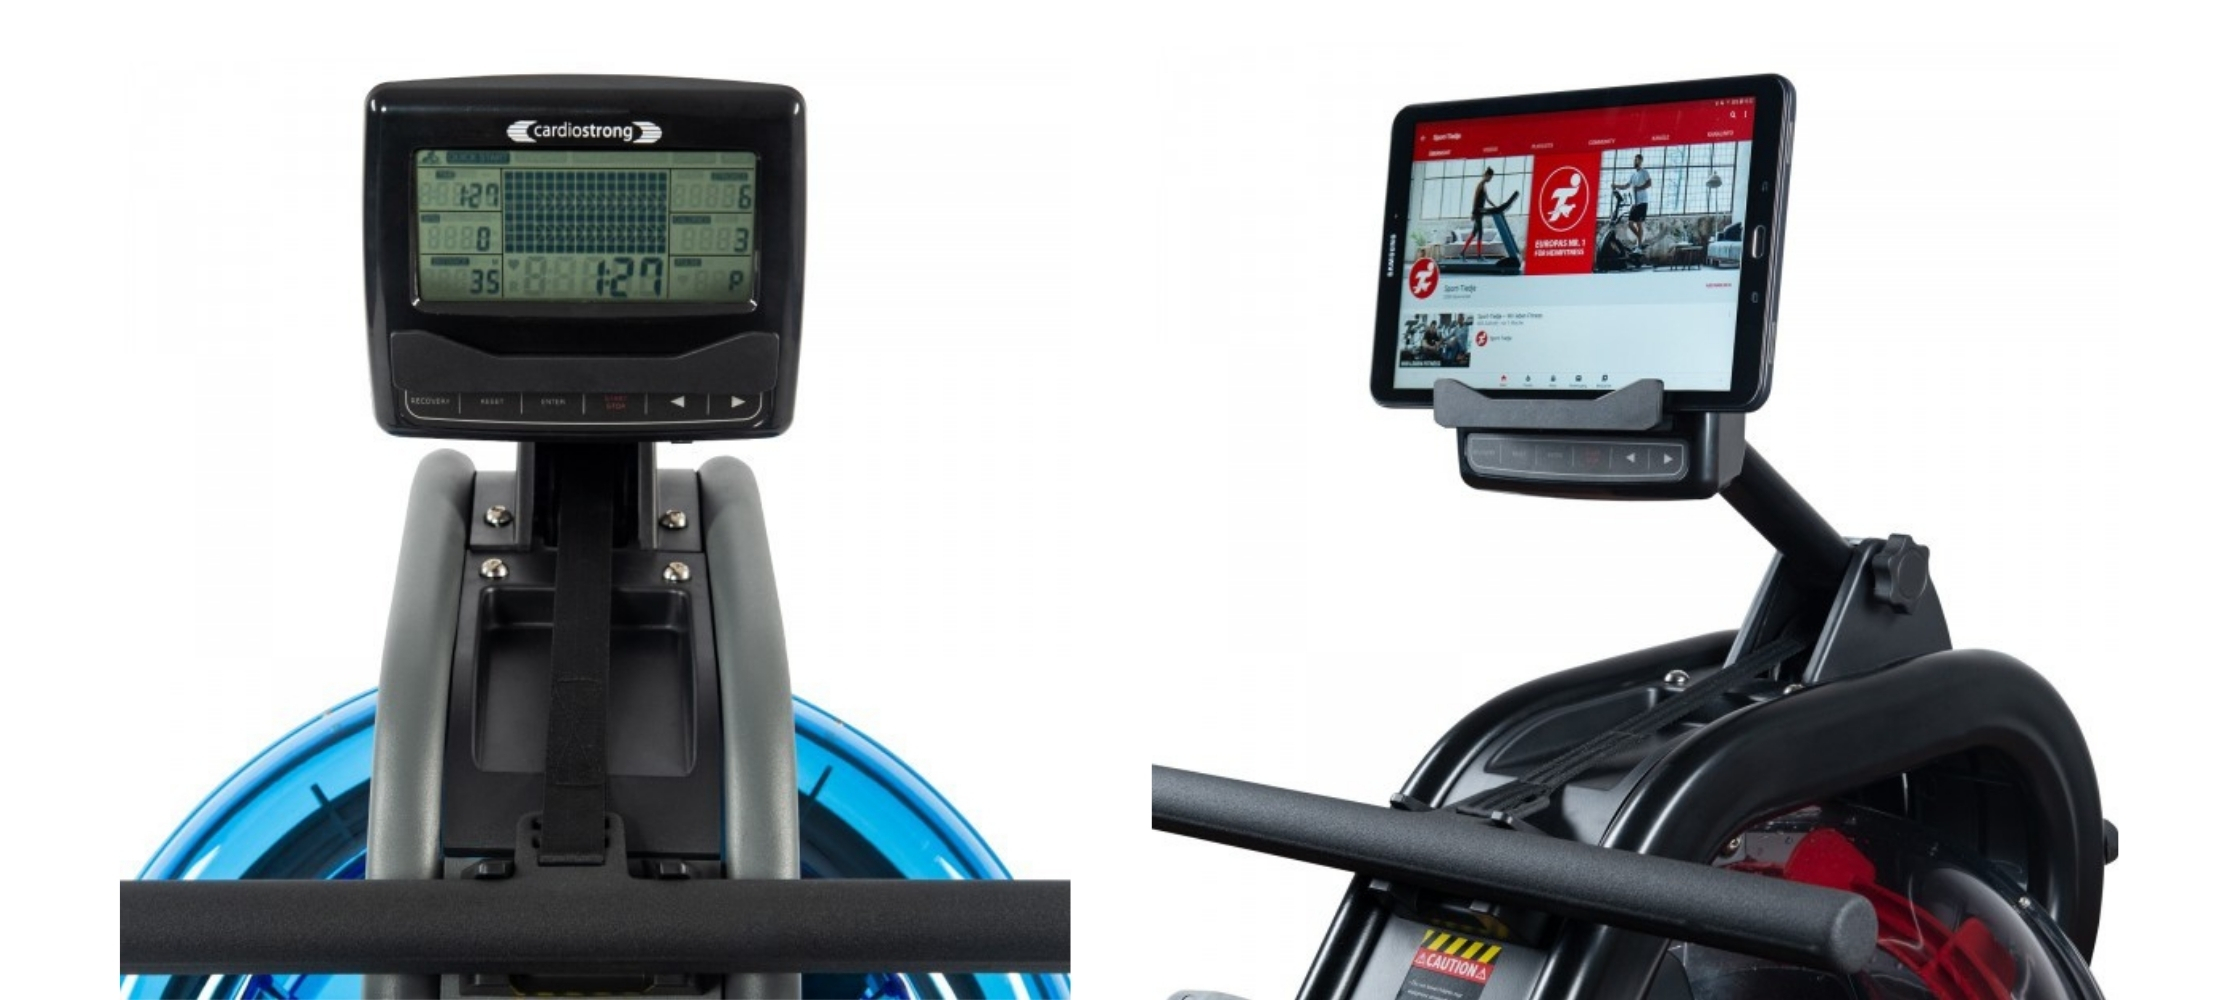 console in rowing machines